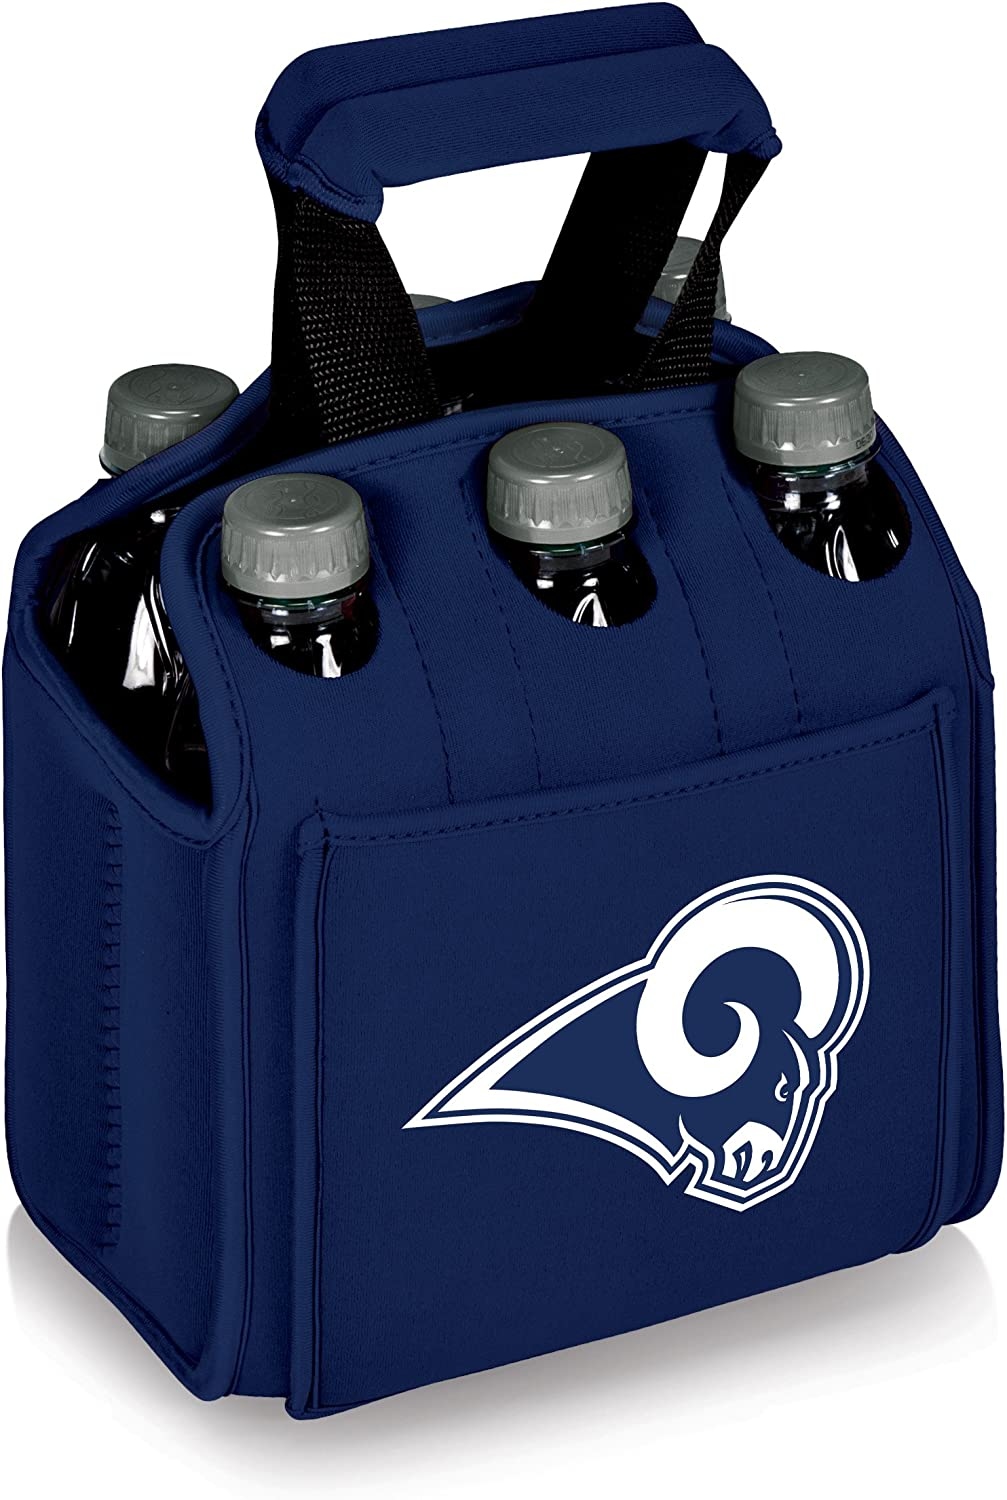 NFL Los Angeles Rams Six Pack Insulated Cooler Tote, Navy